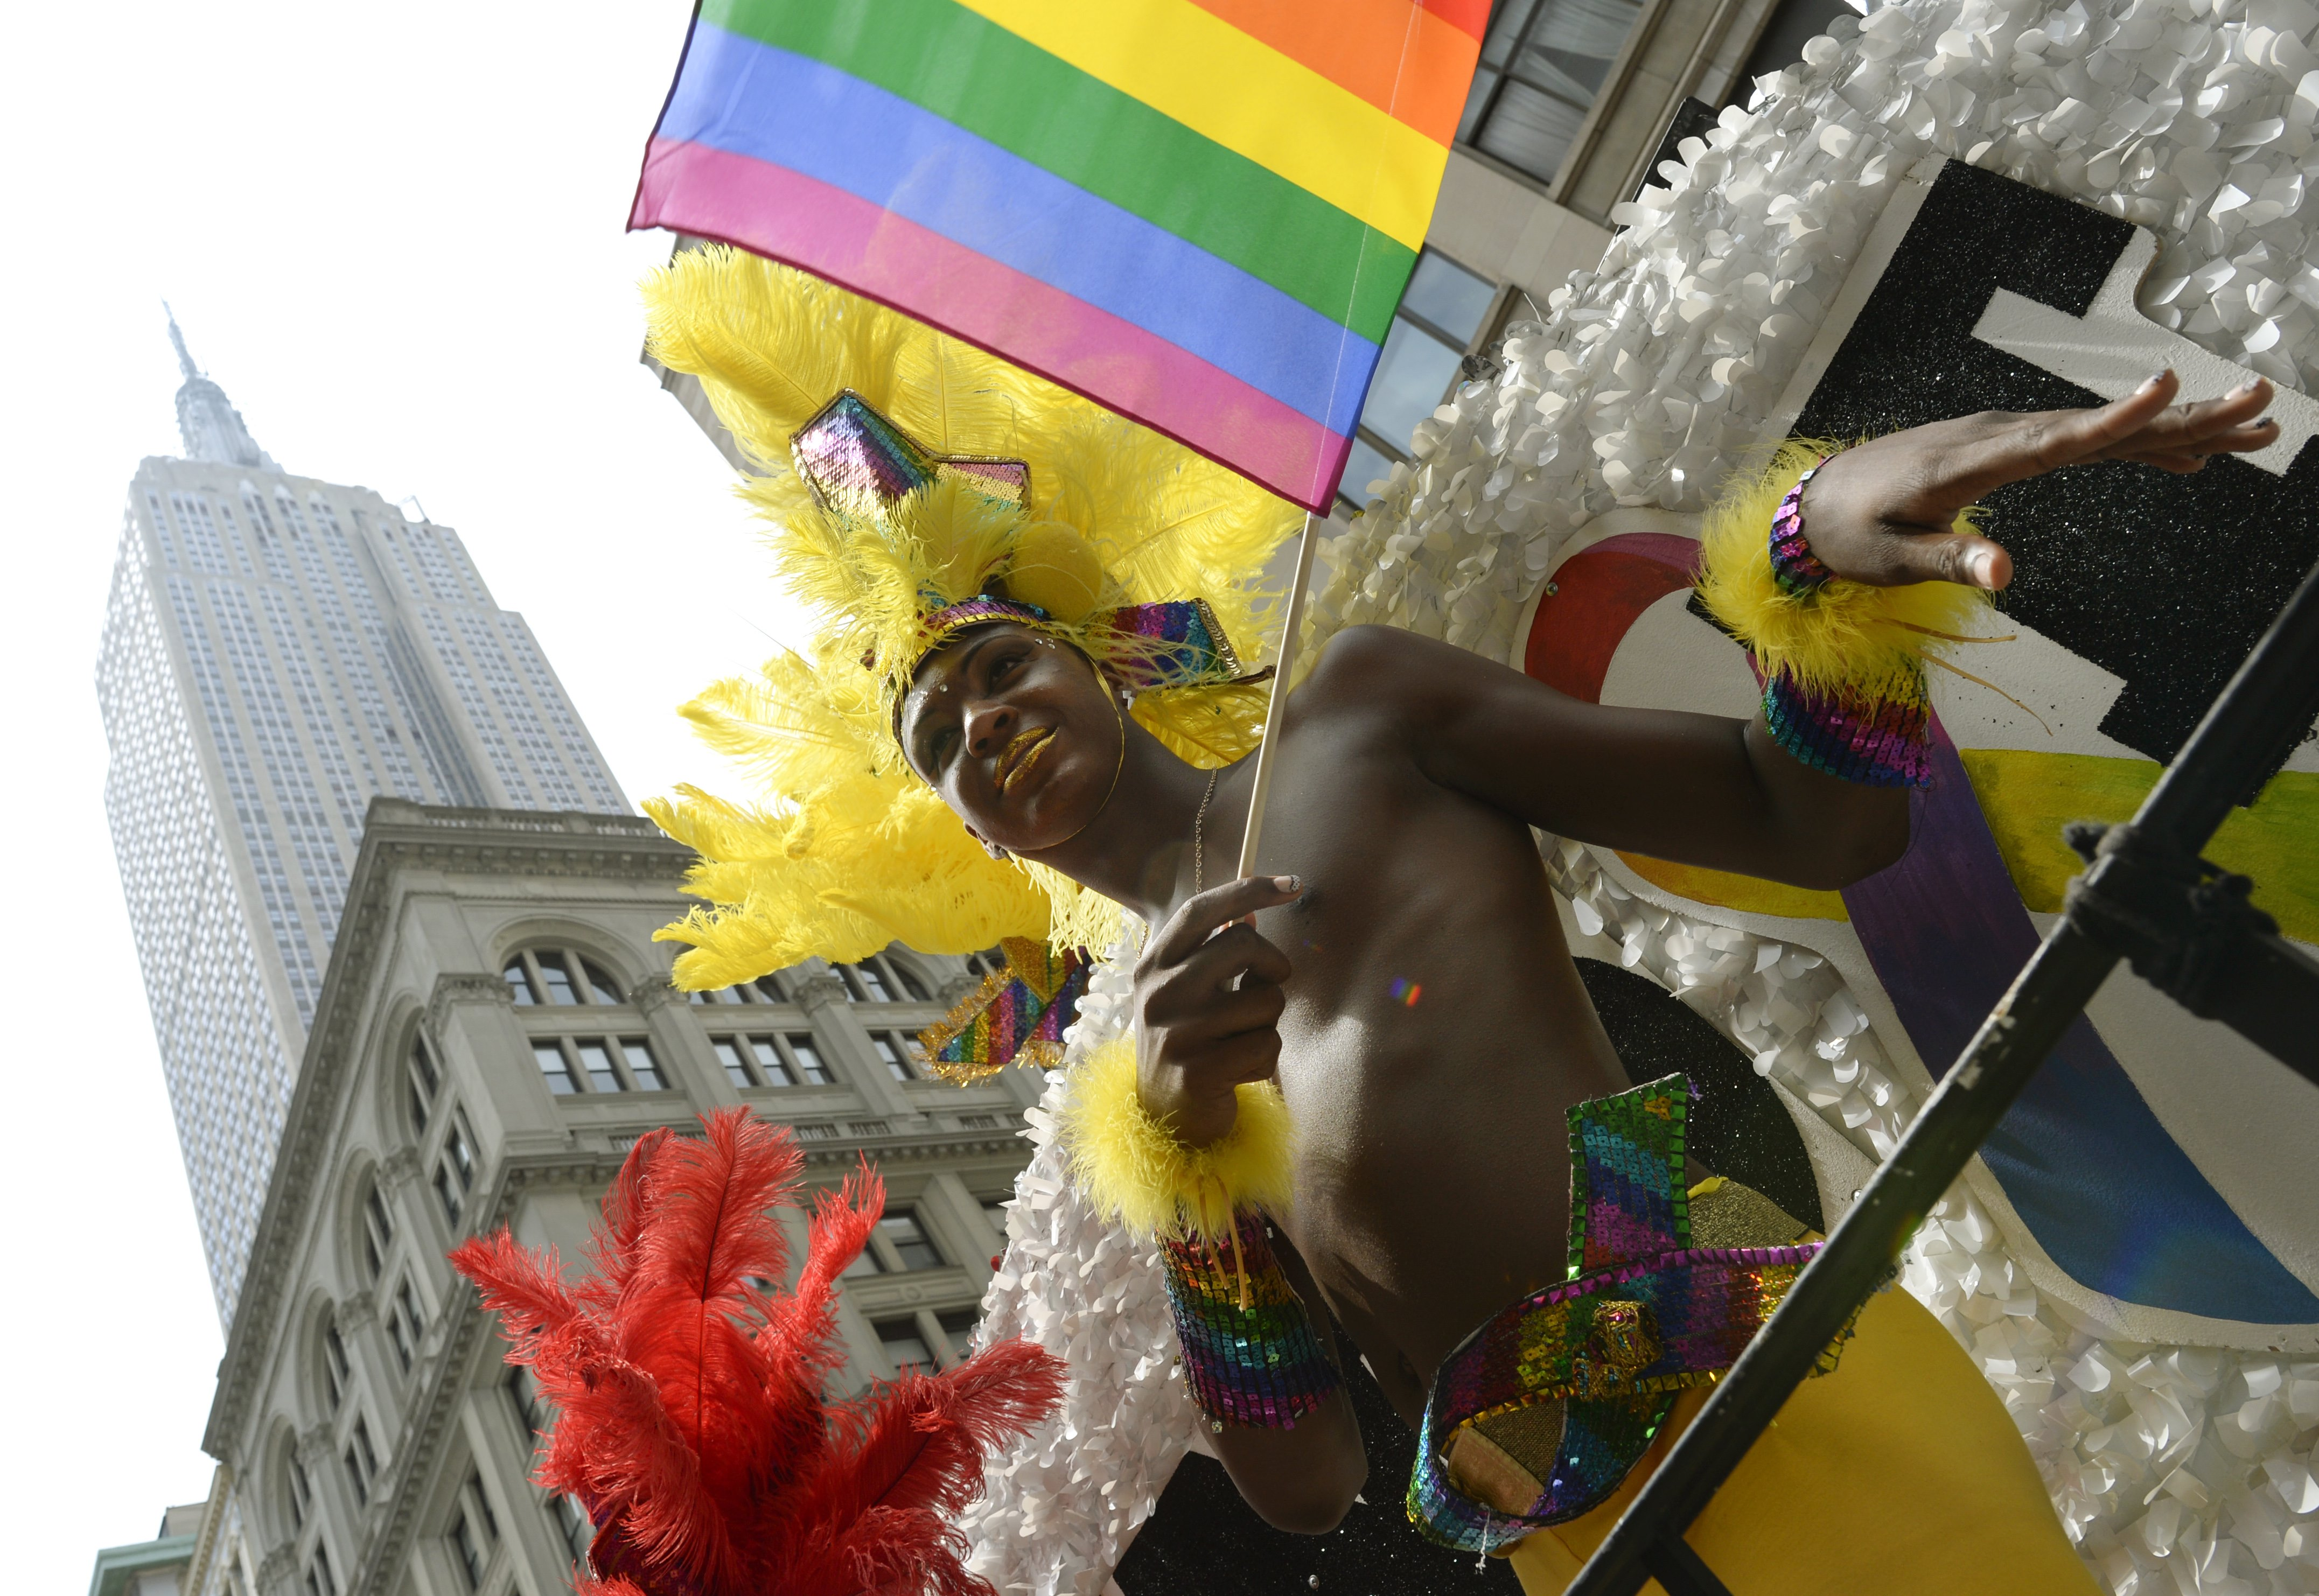 The Supreme Court on Wednesday struck down Proposition 8 and also invalidated part of a 1996 federal law that denied spousal benefits to gay couples, making New York's Pride Parade especially festive.